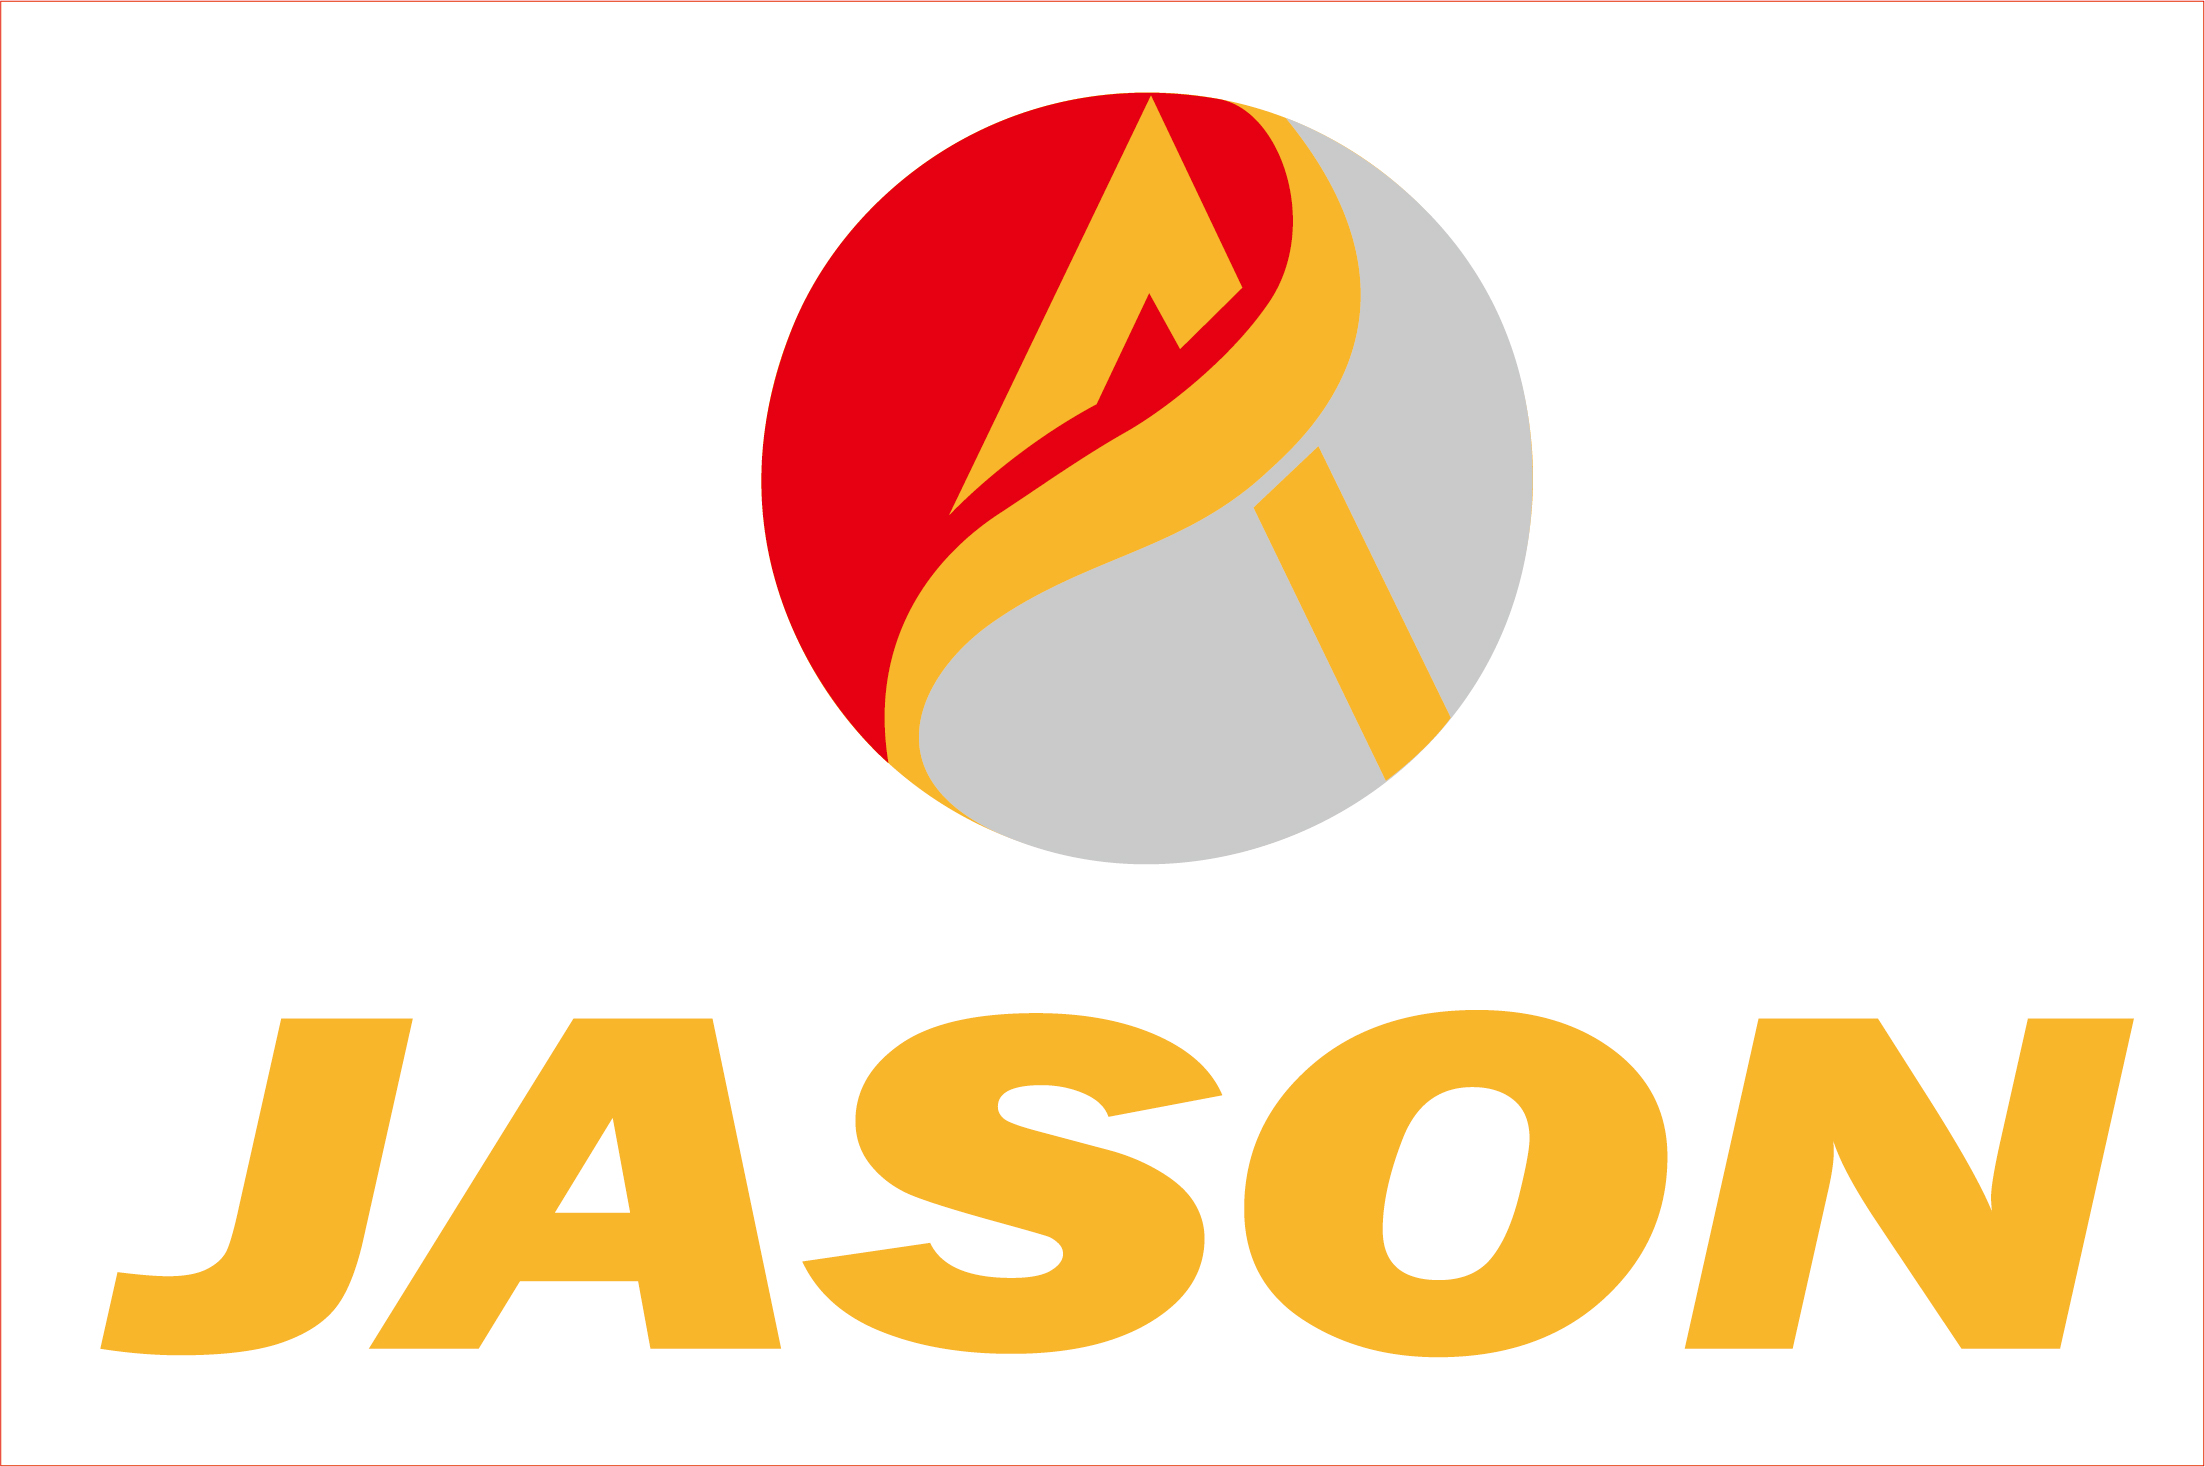 JASON INDUSTRIAL CO., LTD.